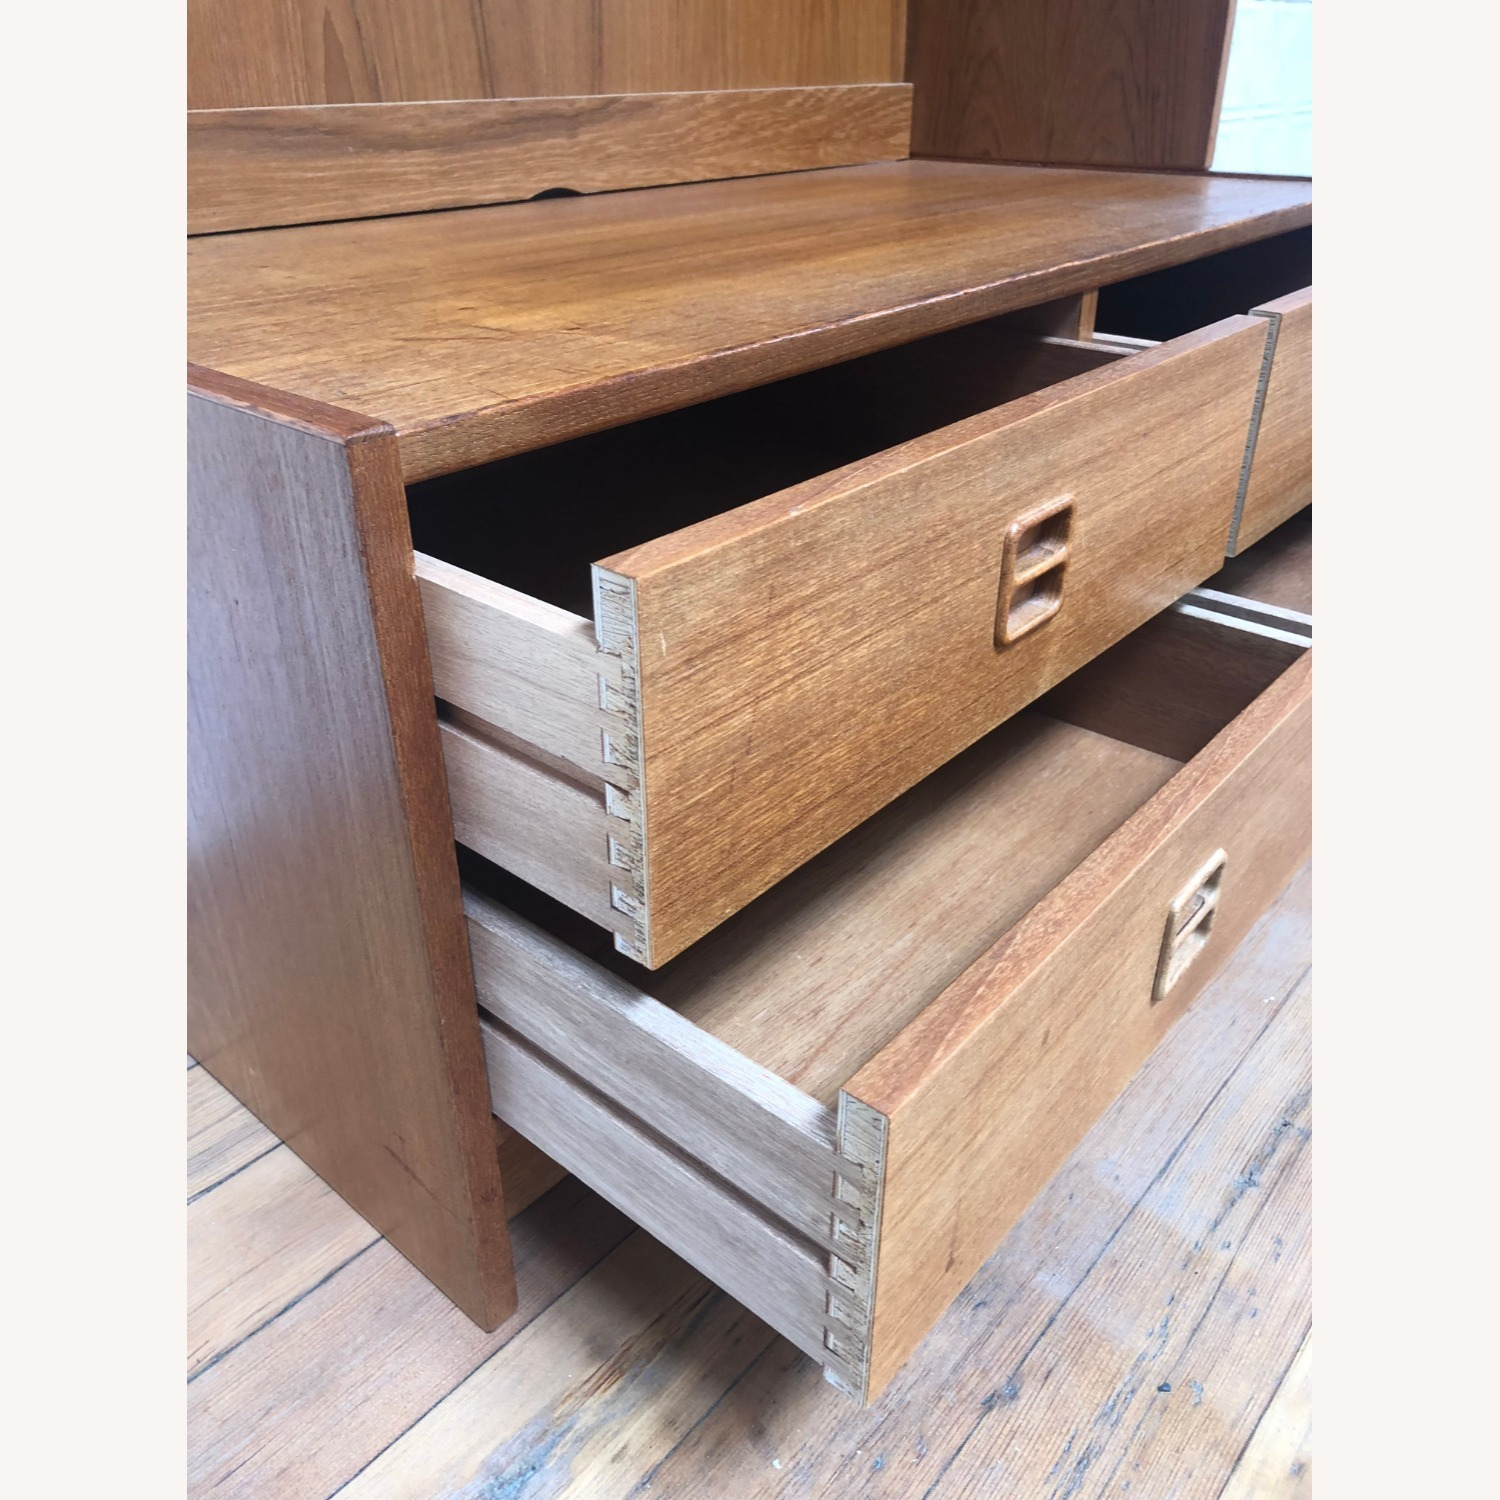 Danish Modern Shelving Unit with Four Drawers - image-11